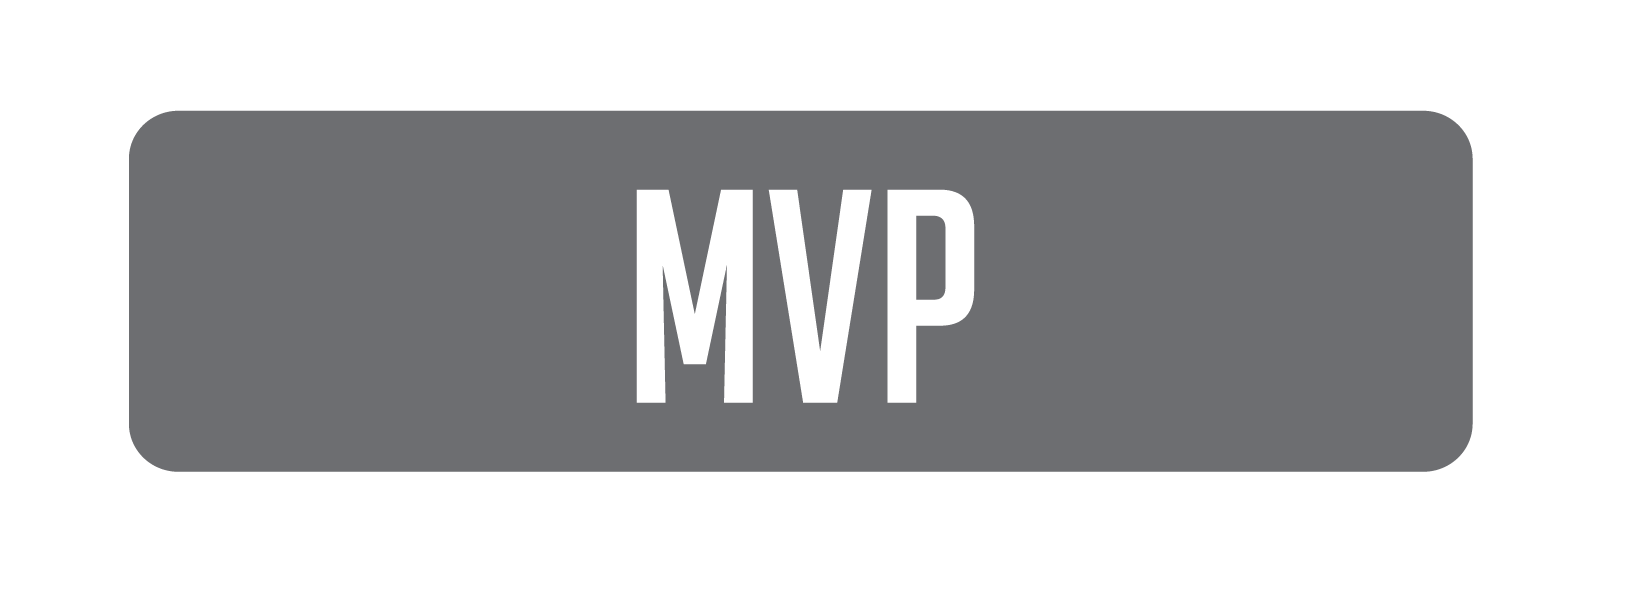 GoFan_Product Offering - Images_MVP.png